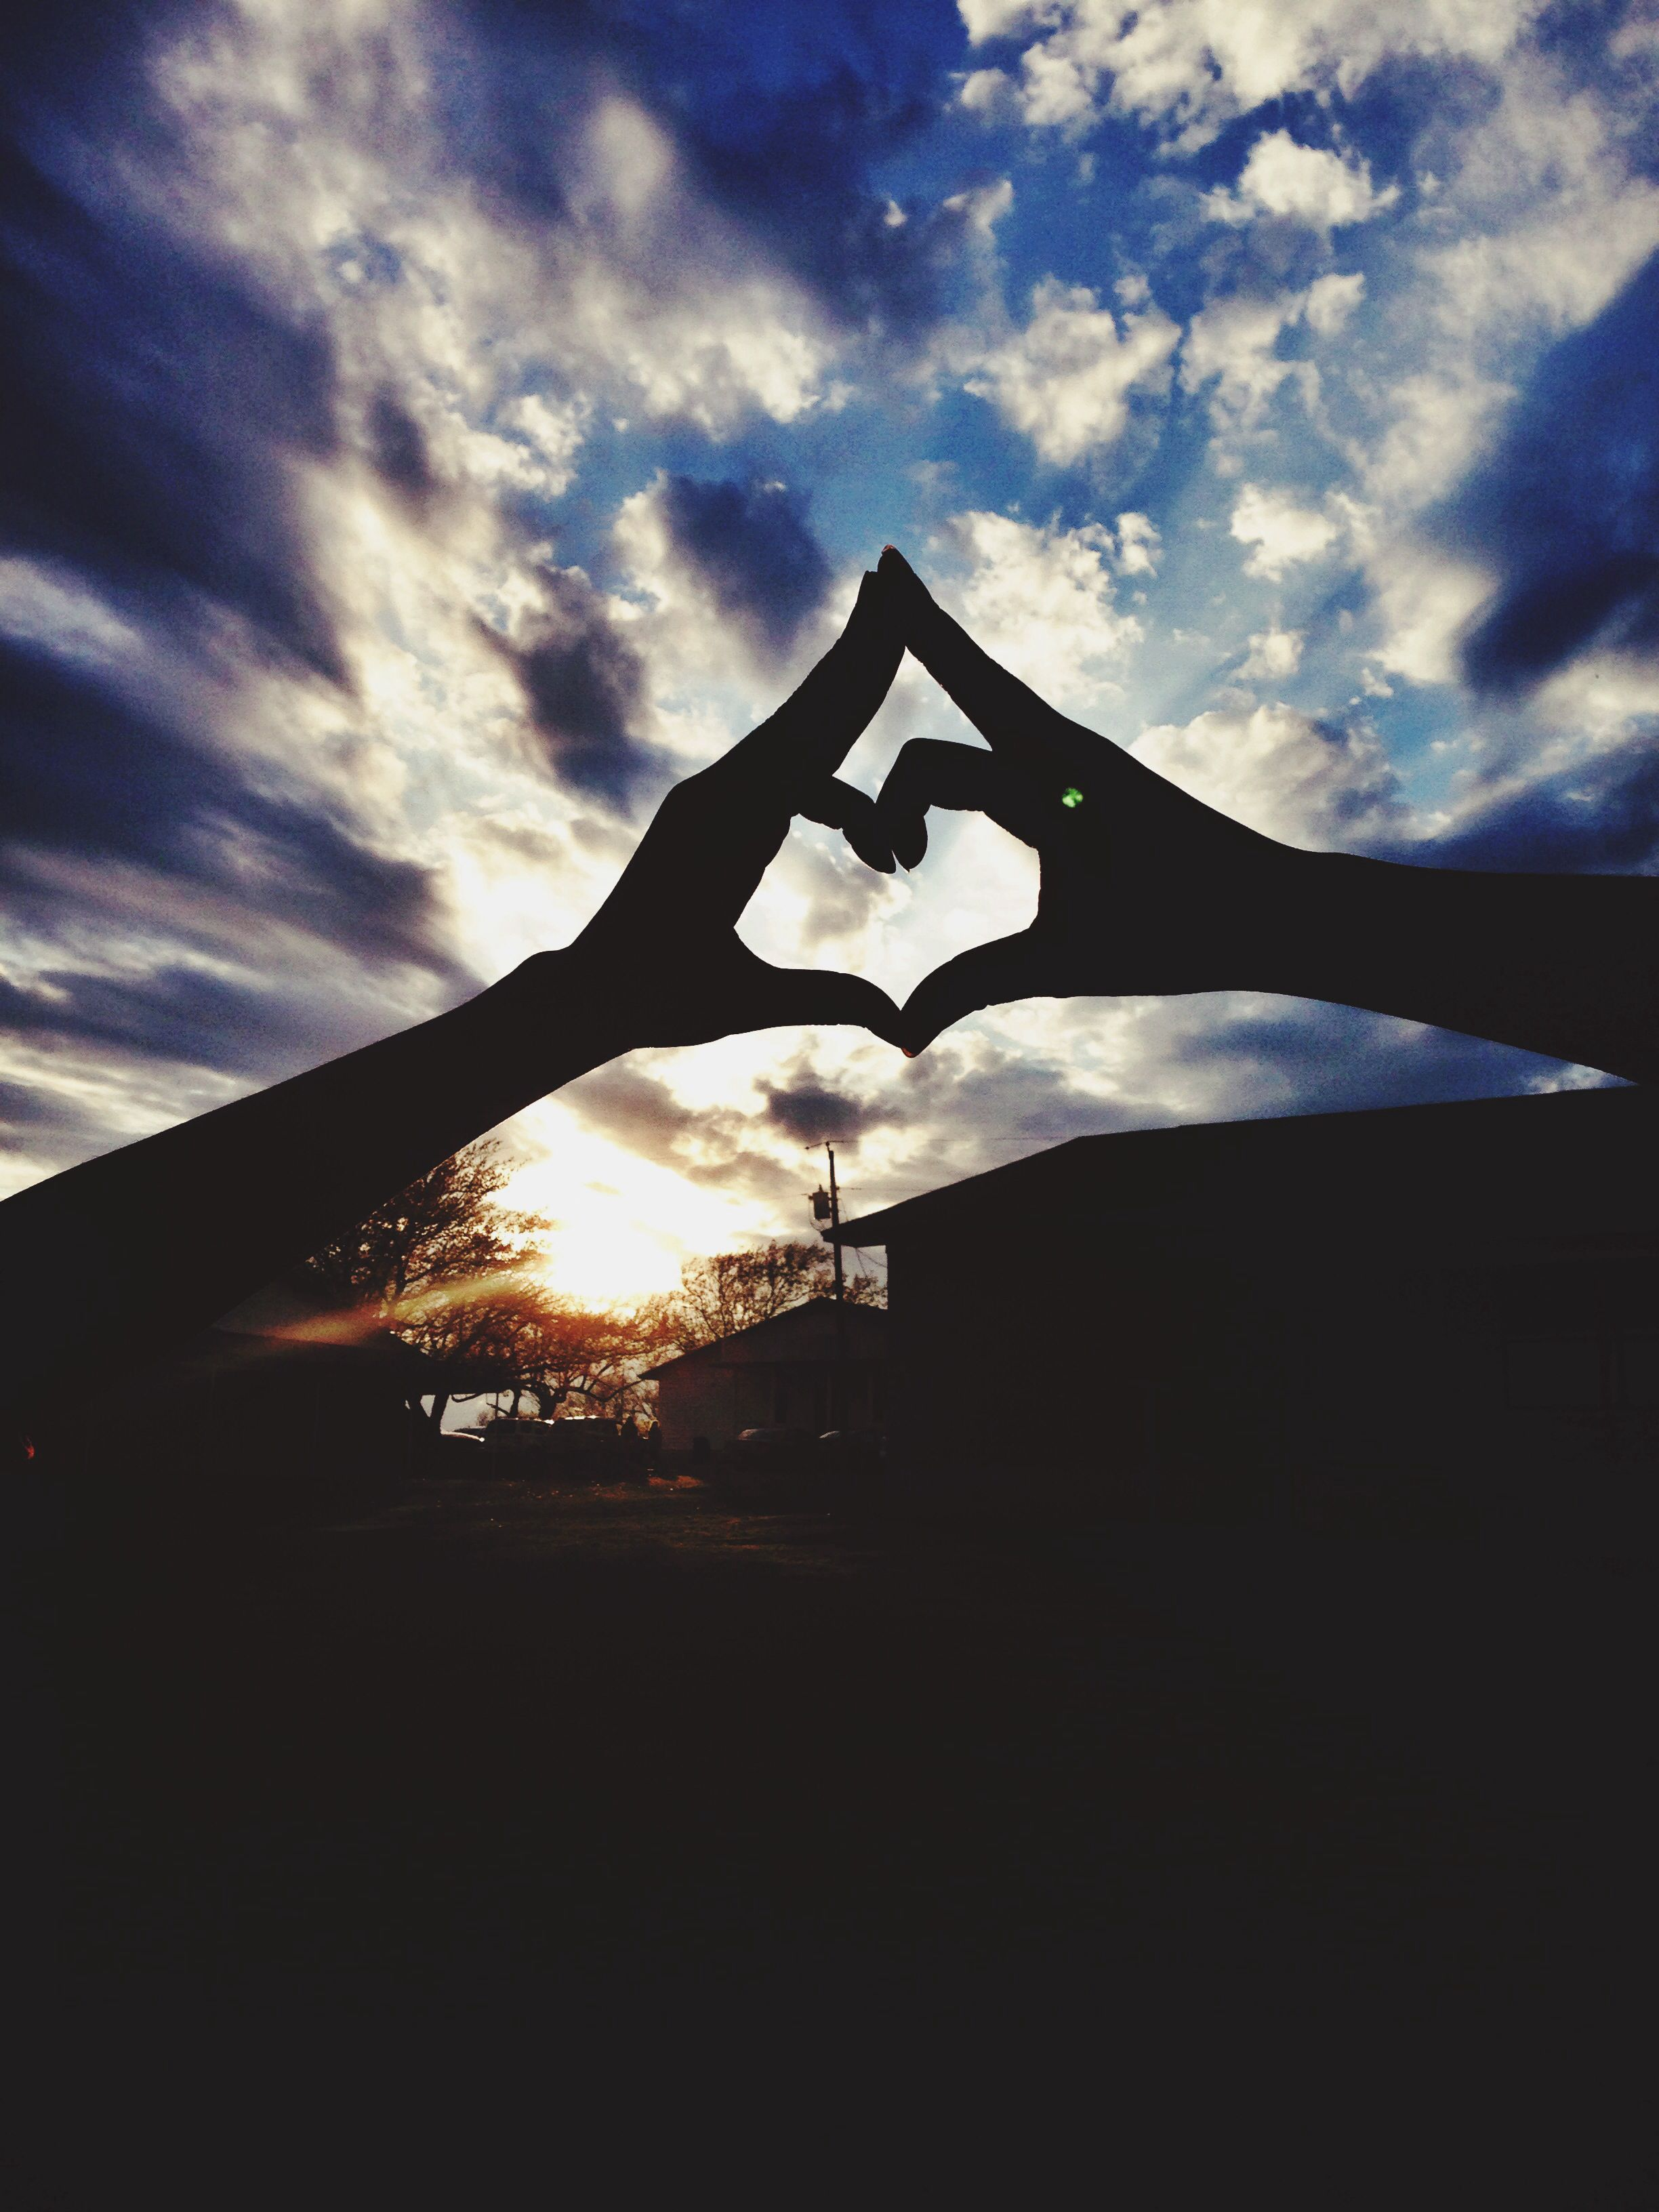 It's official!! ΣΦΛ (Sigma Phi Lambda) has a hand sign! Phi Lambs everywhere can finally throw what we know! :)